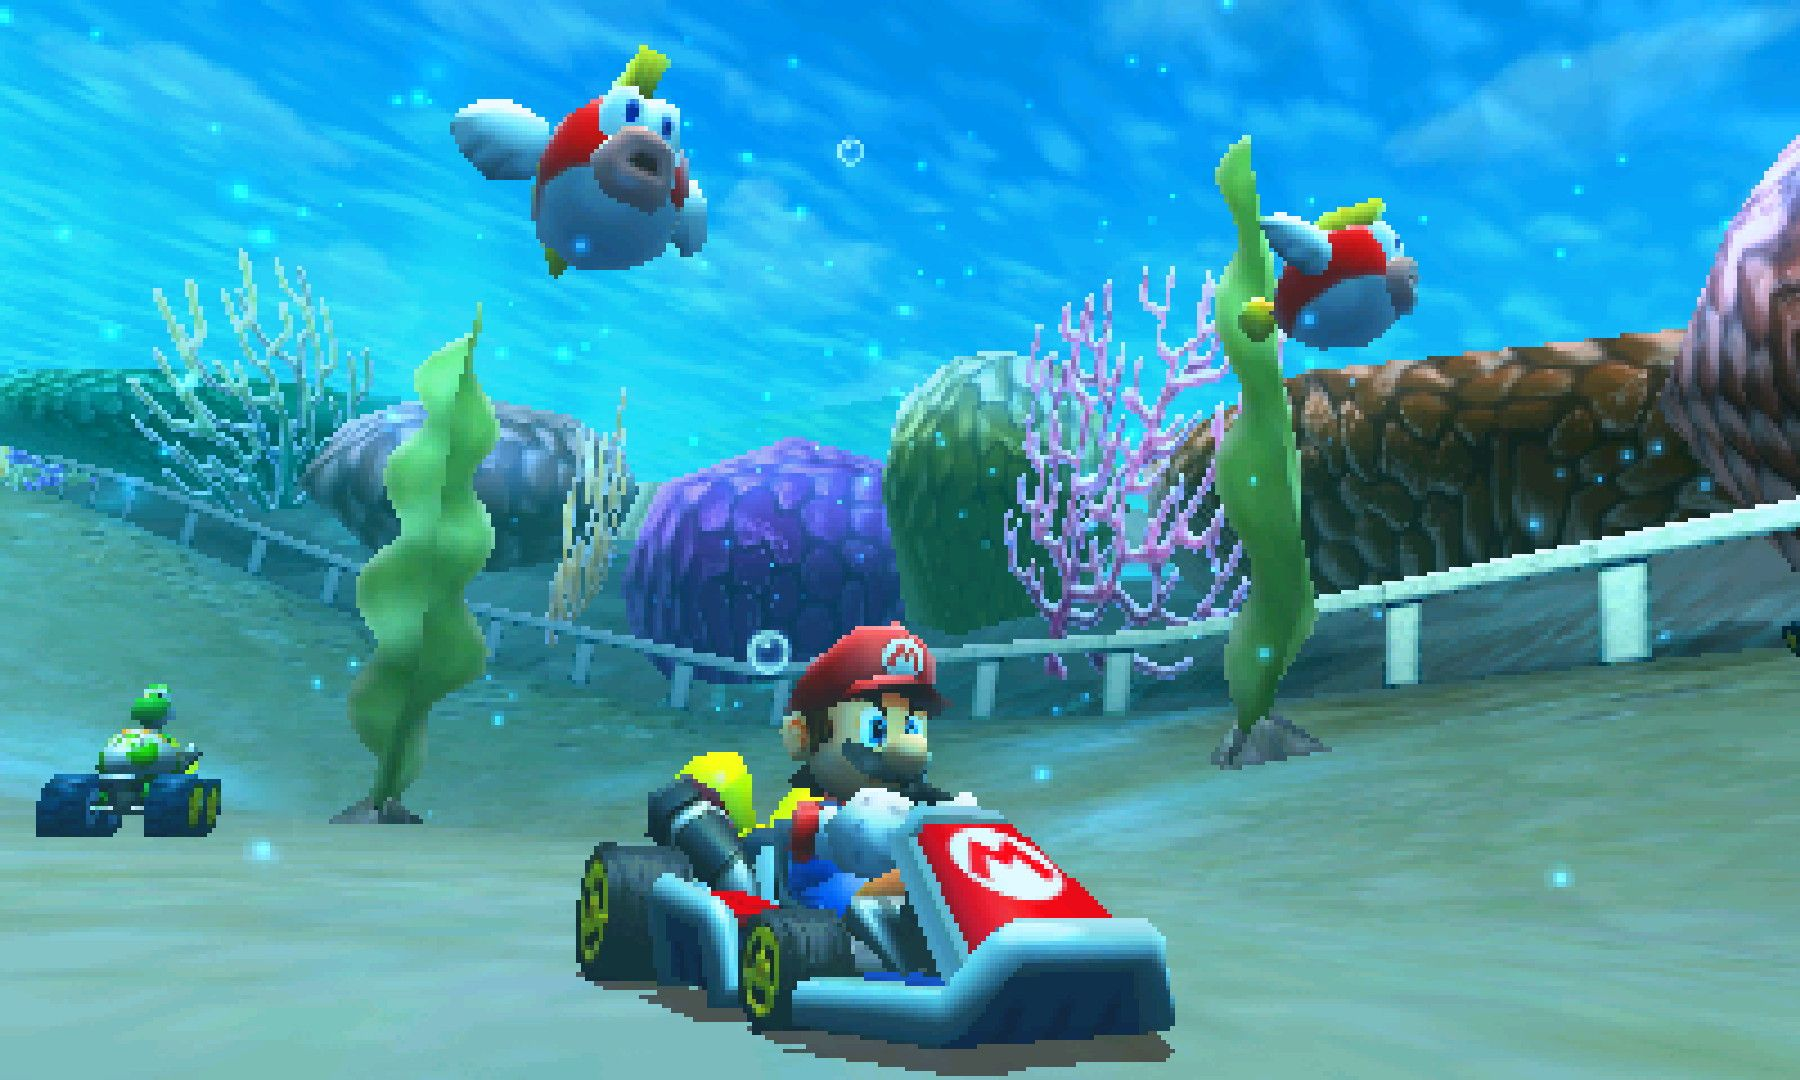 Mario Kart coming soon to smartphones